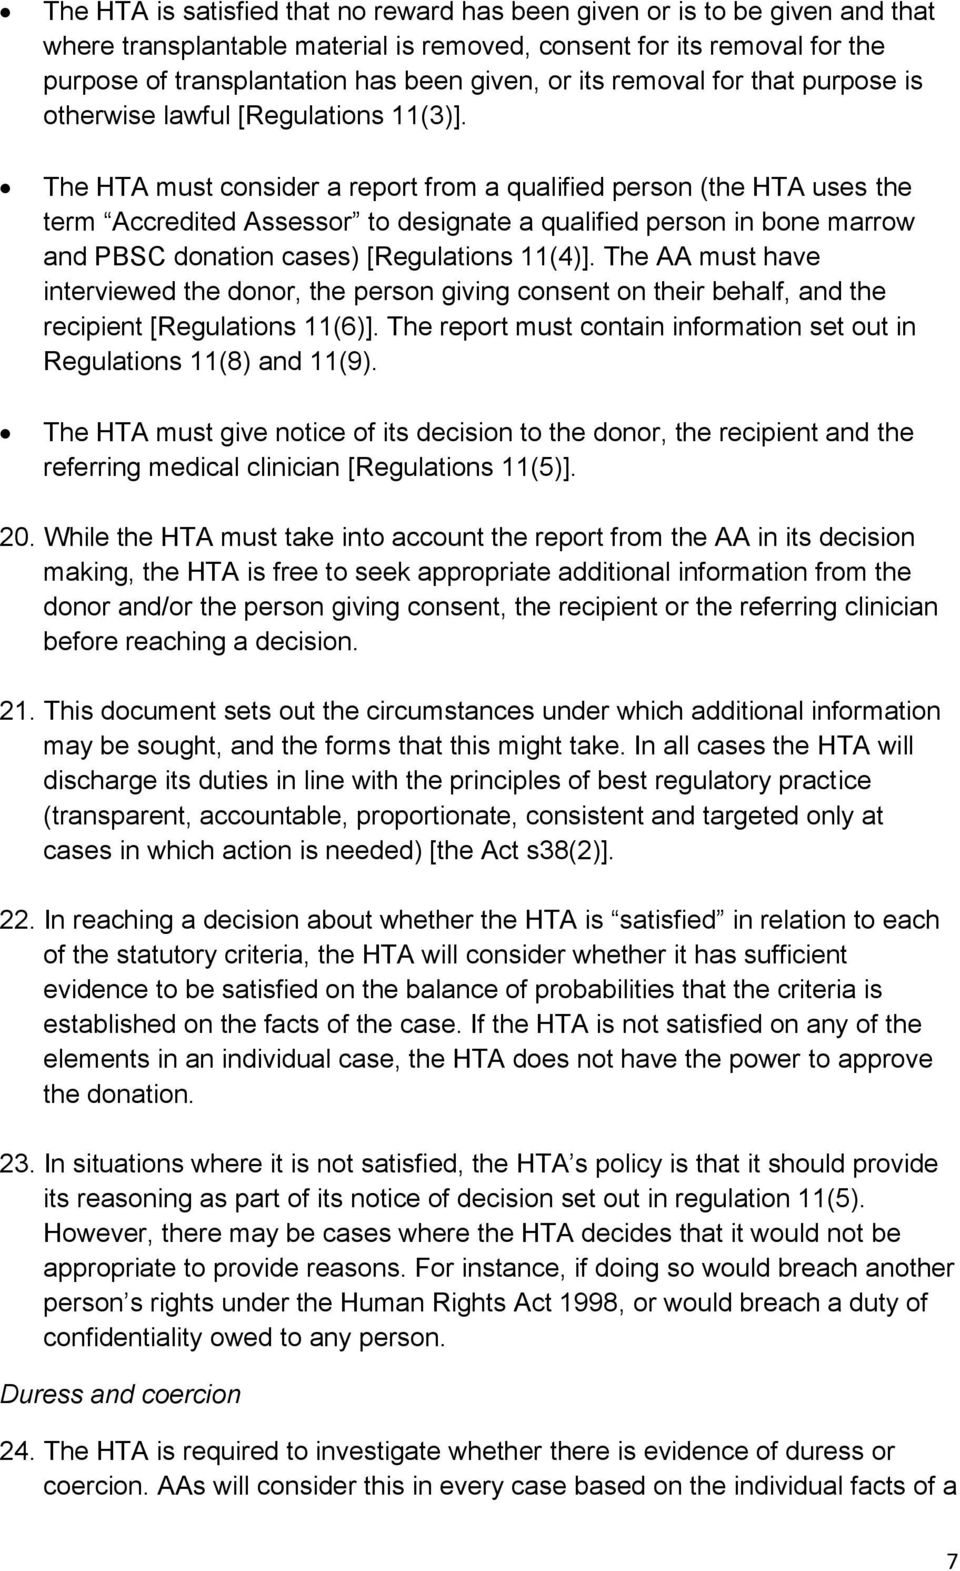 The HTA must consider a report from a qualified person (the HTA uses the term Accredited Assessor to designate a qualified person in bone marrow and PBSC donation cases) [Regulations 11(4)].